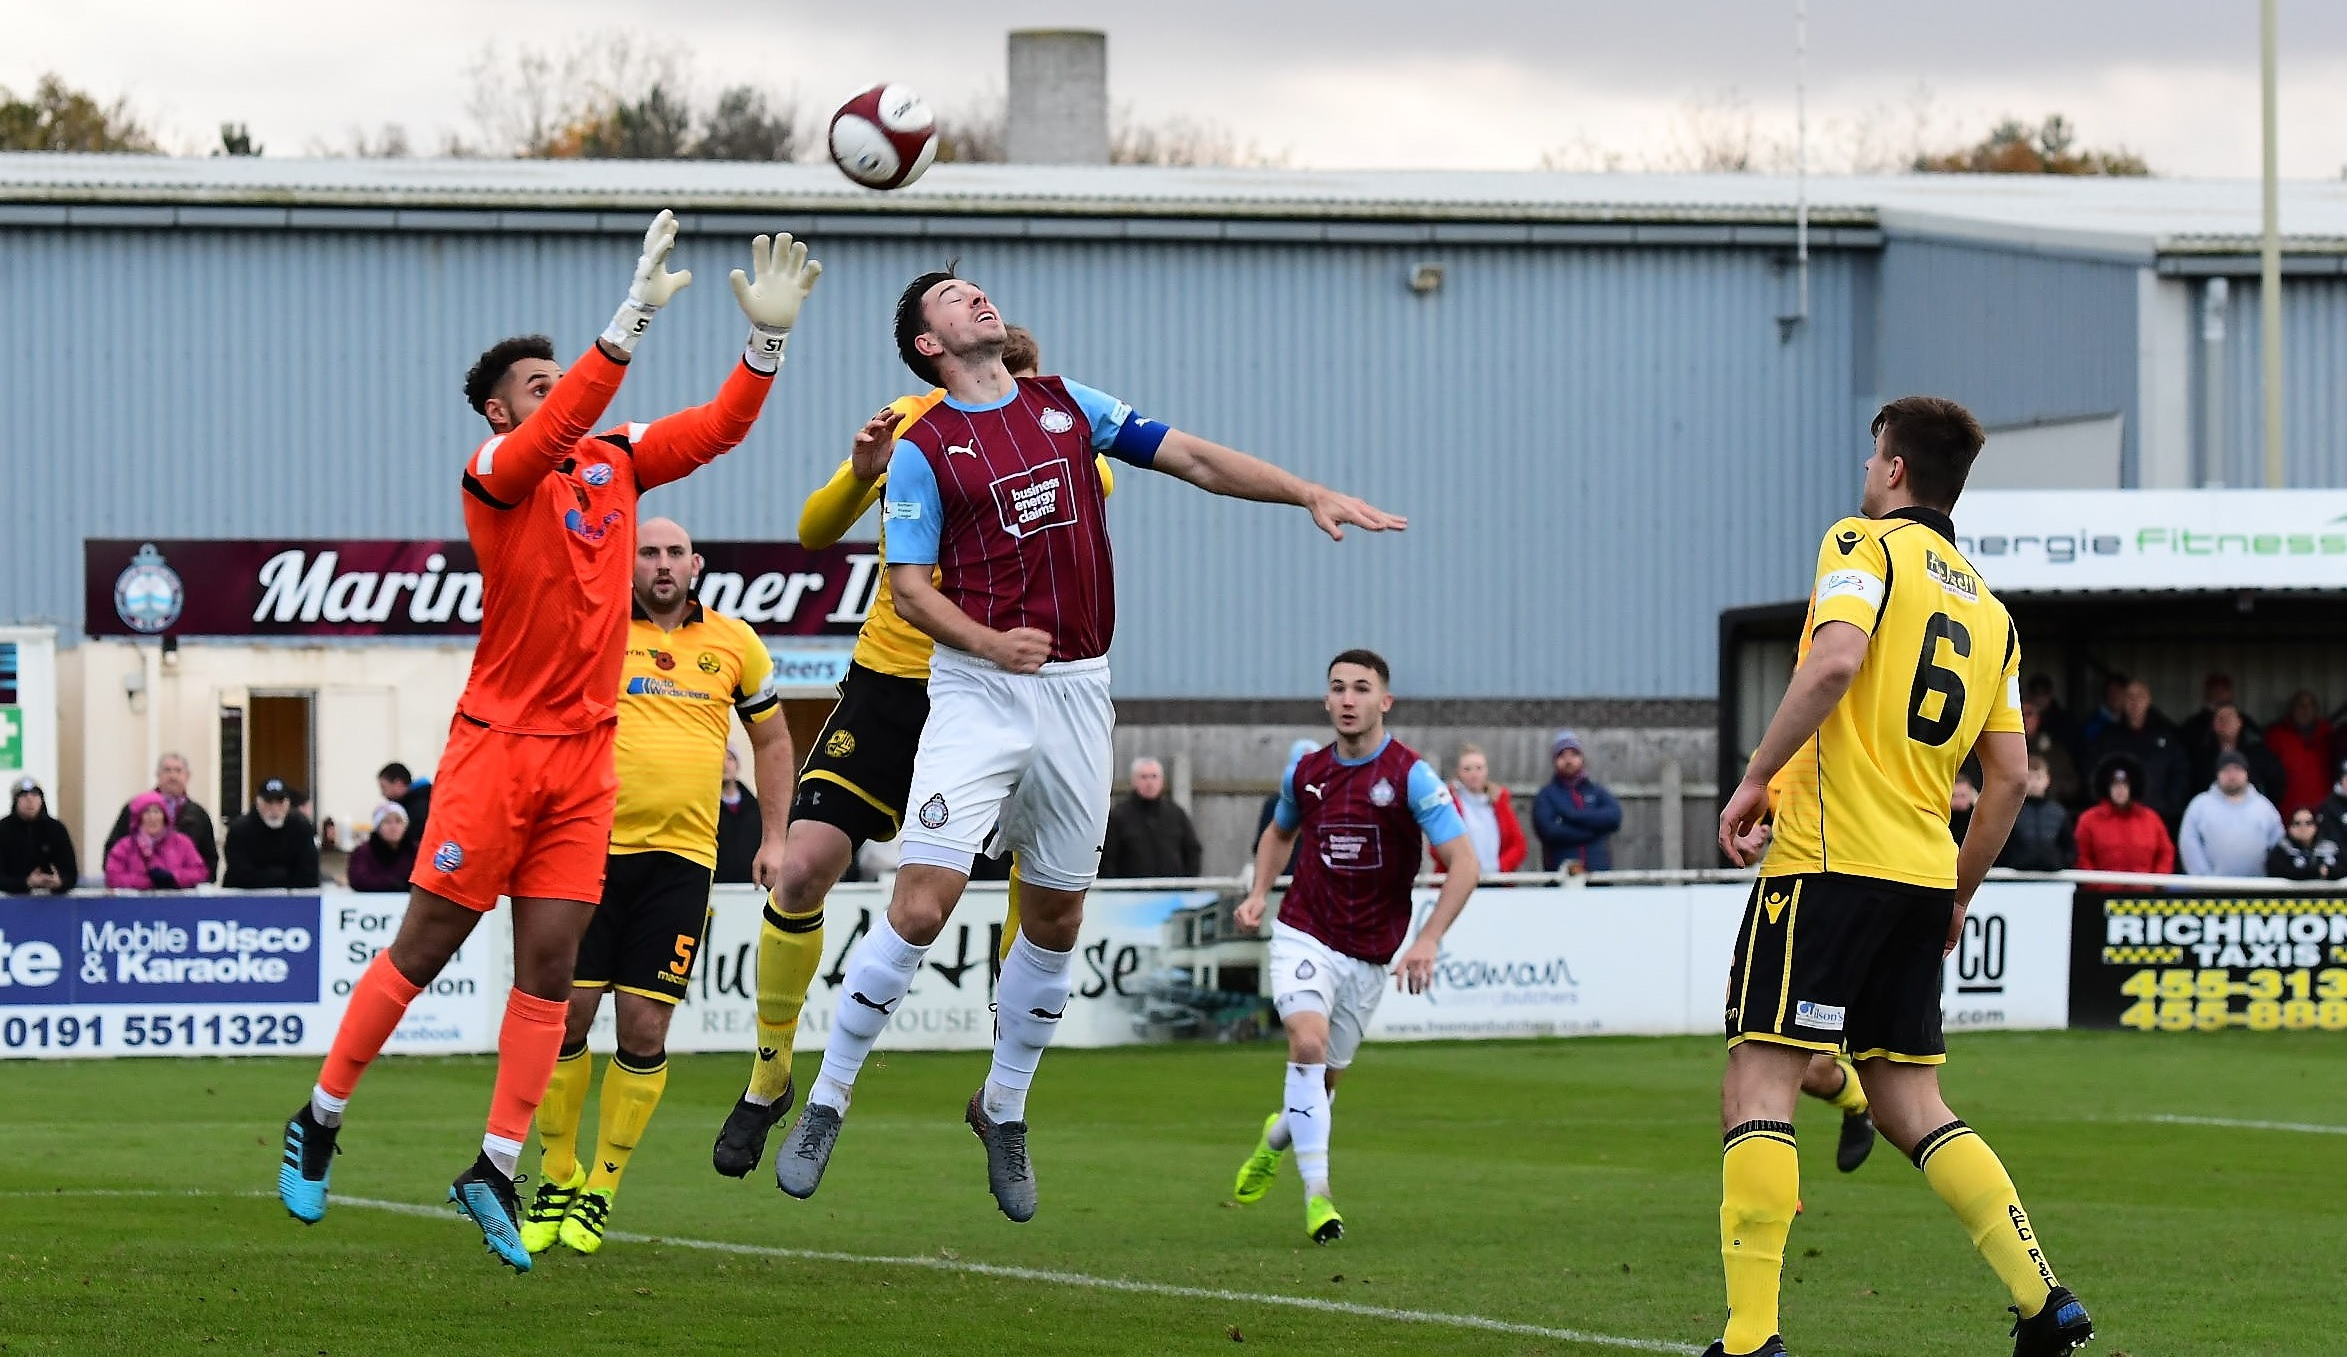 Match Preview: South Shields vs Warrington Town, BetVictor Northern Premier Division